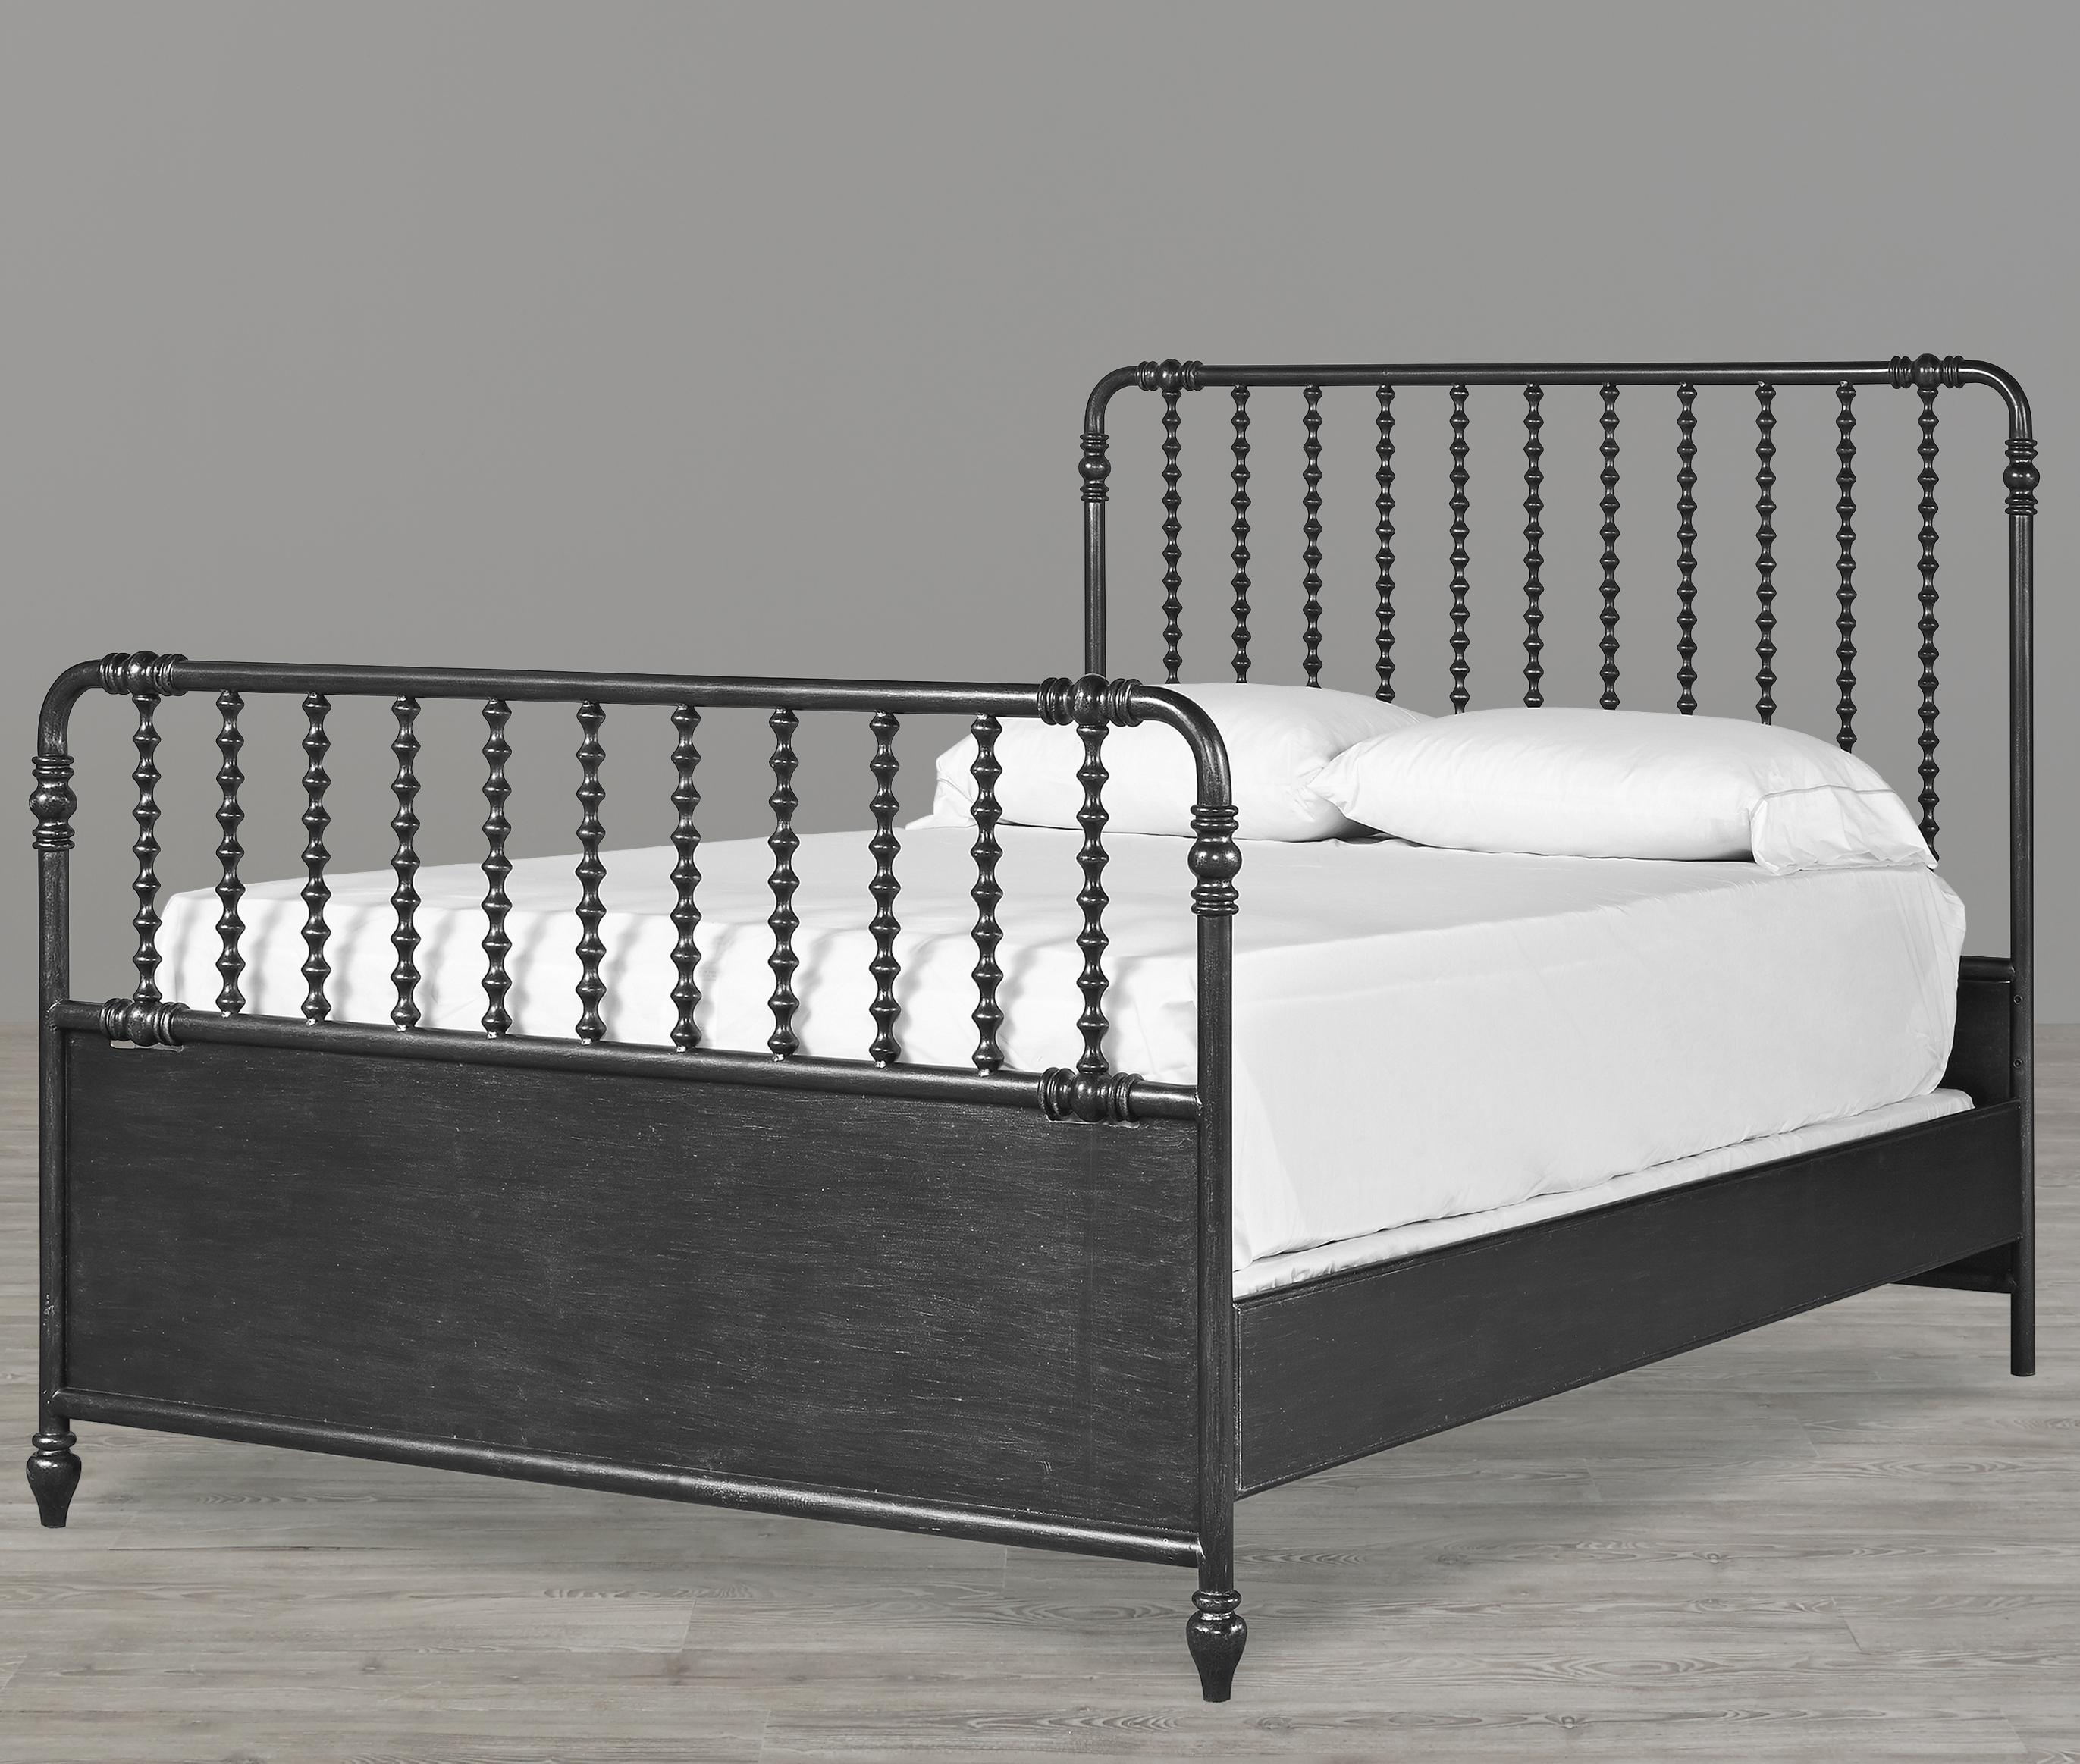 Smartstuff Black and White Full Bed - Item Number: 437B040